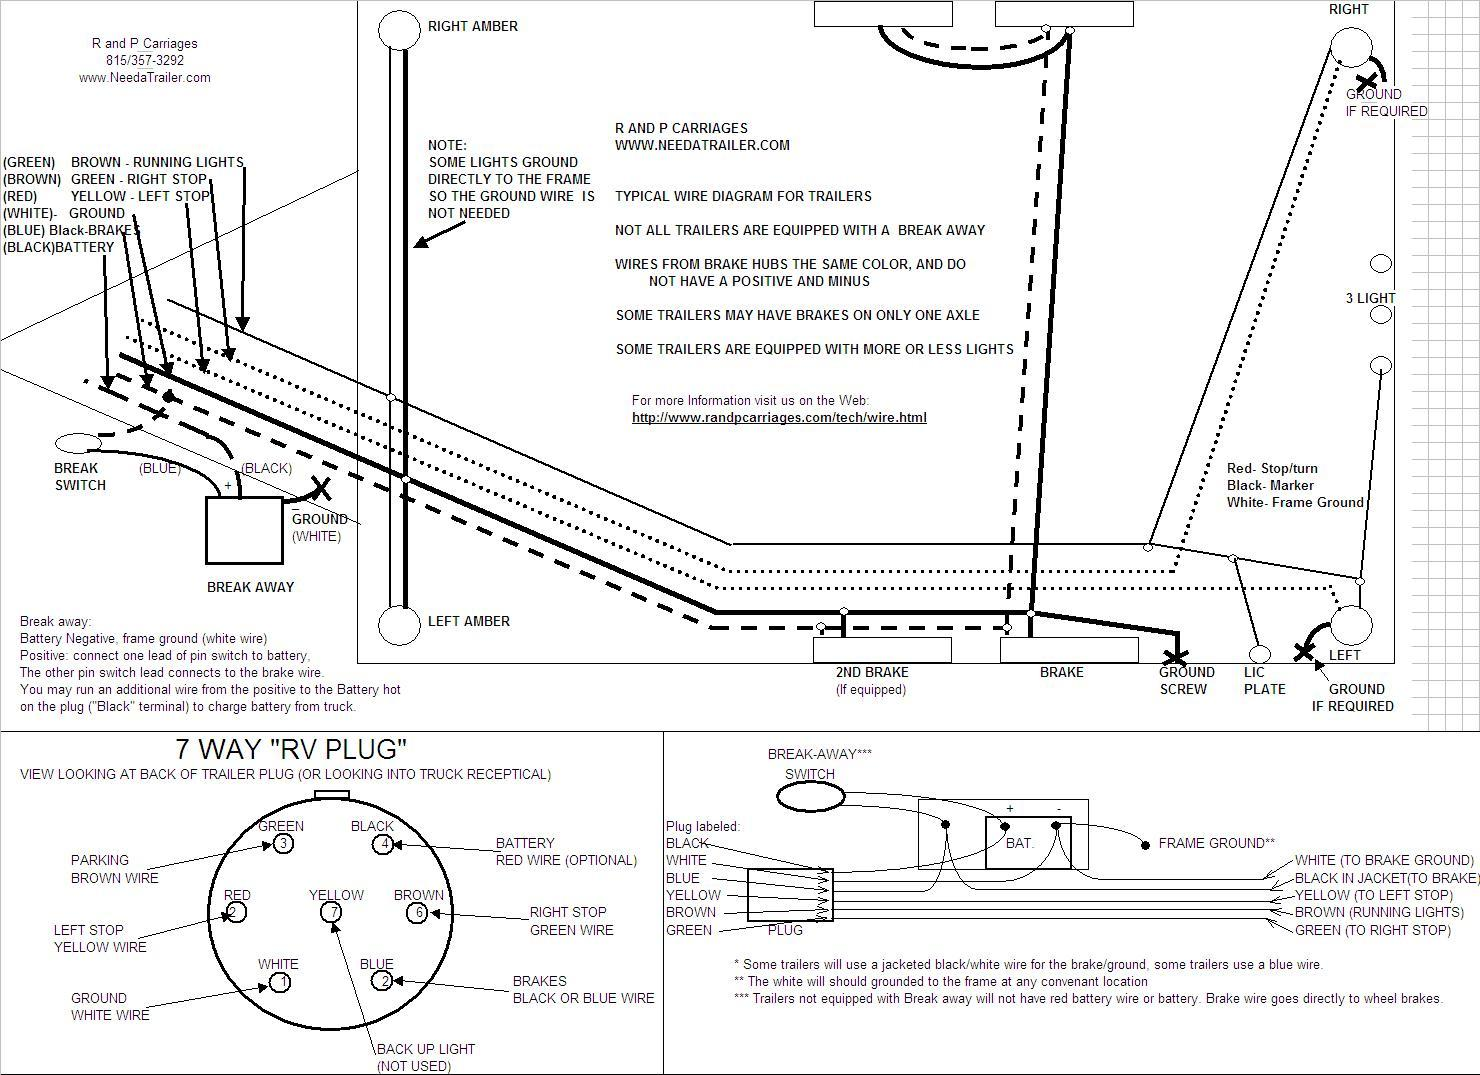 7 way wiring diagram brake controller installation instructions semi truck trailer plug wiring diagram at suagrazia.org